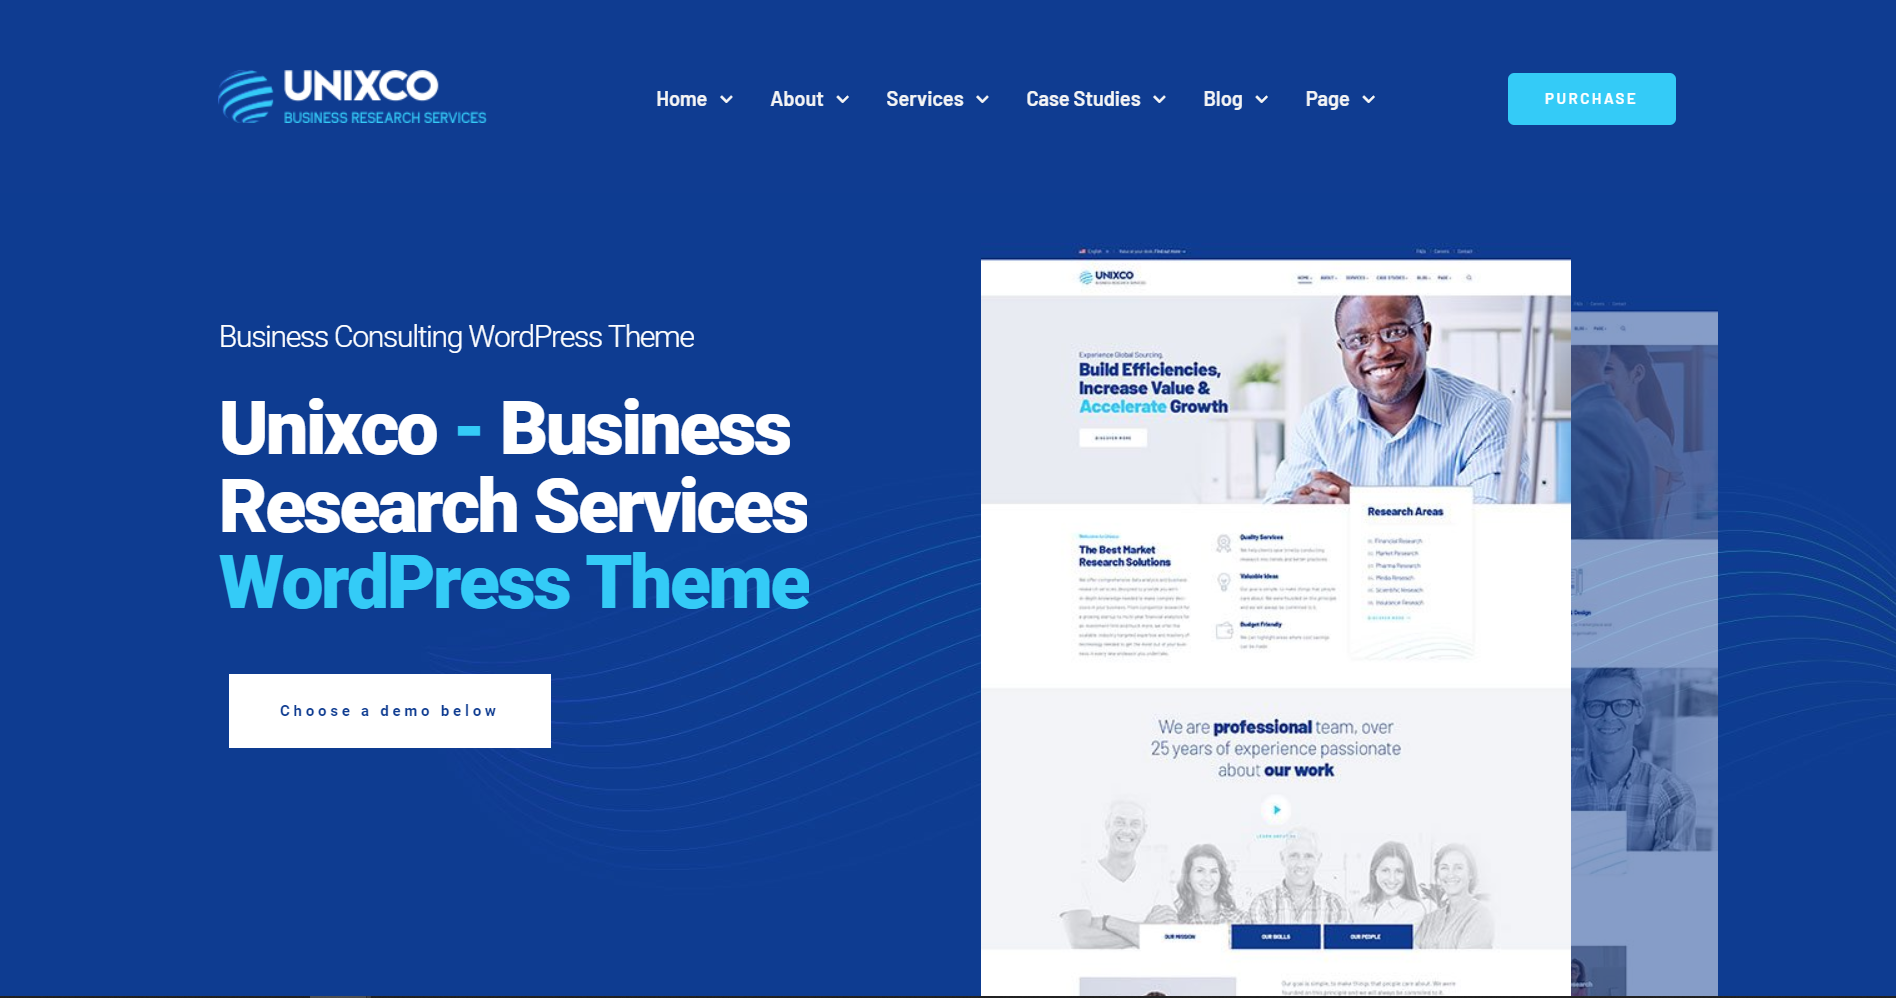 38. Unixco - Business Research Services WordPress Theme